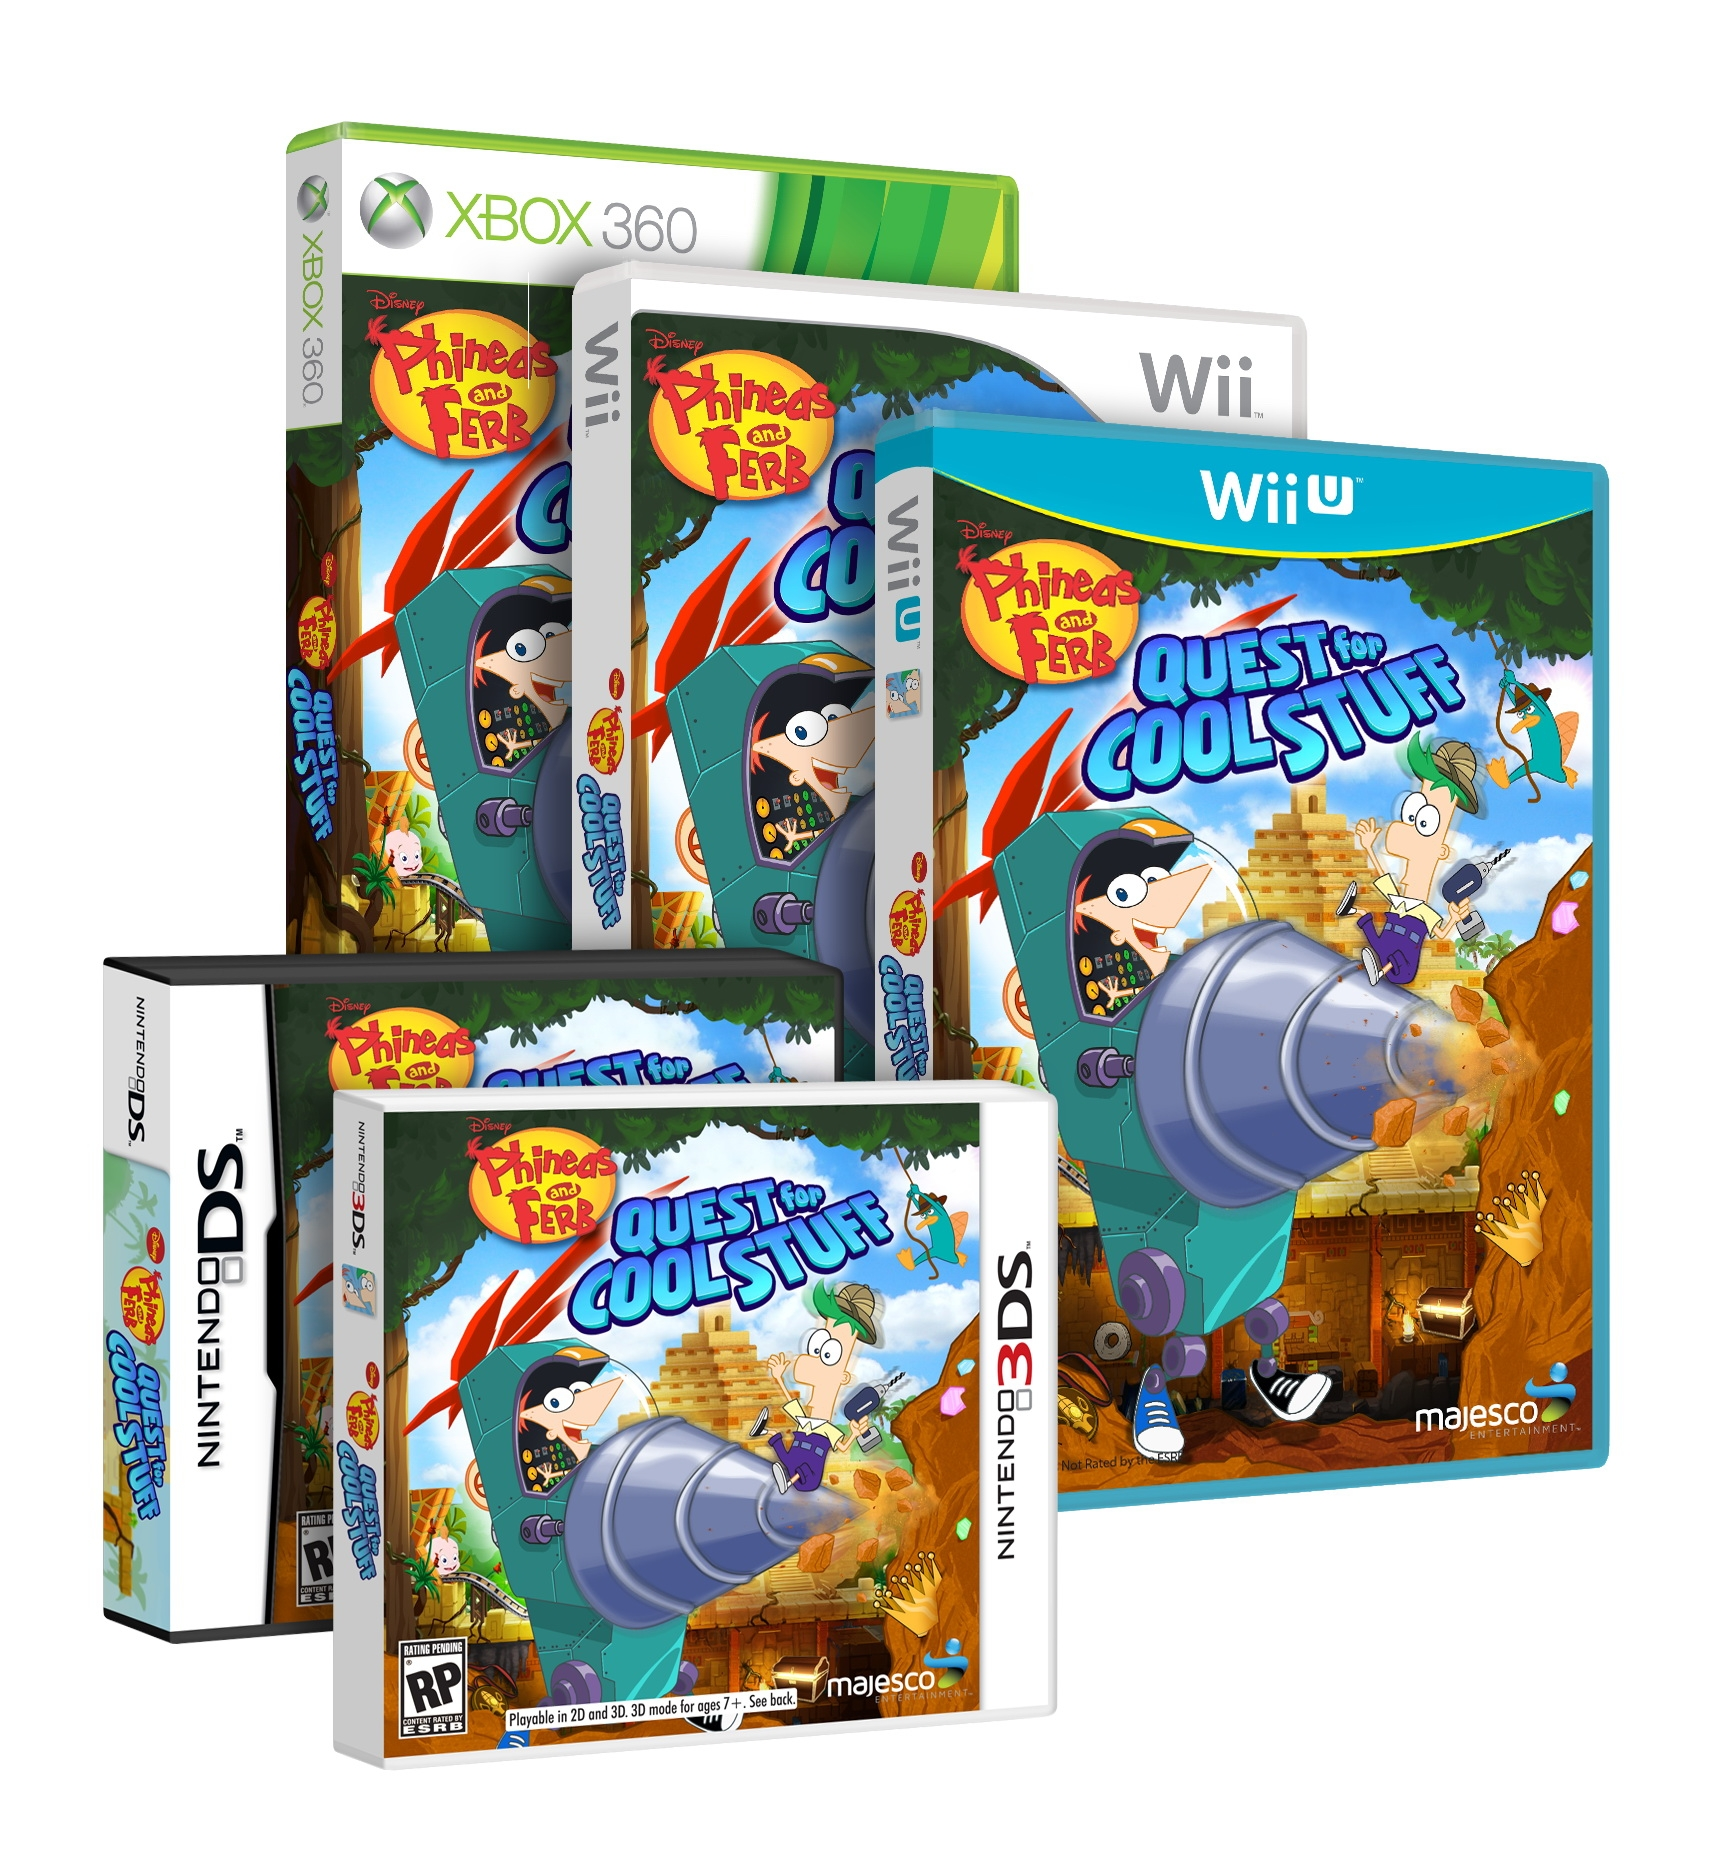 image quest for cool stuff box artwork jpg phineas and ferb